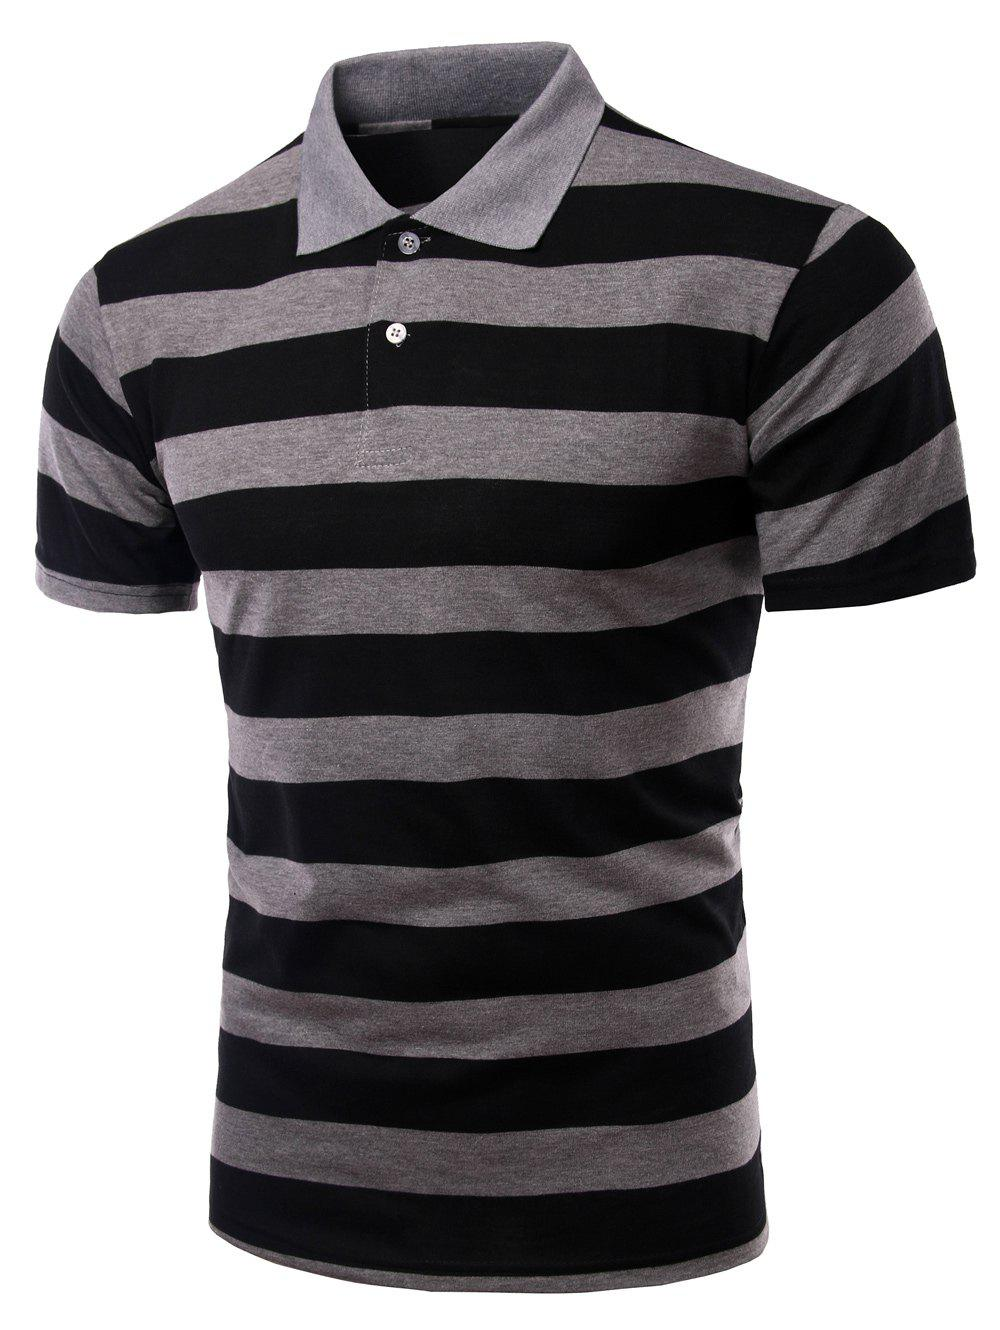 Chic Striped Turn-down Collar Short Sleeves T Shirt For Men